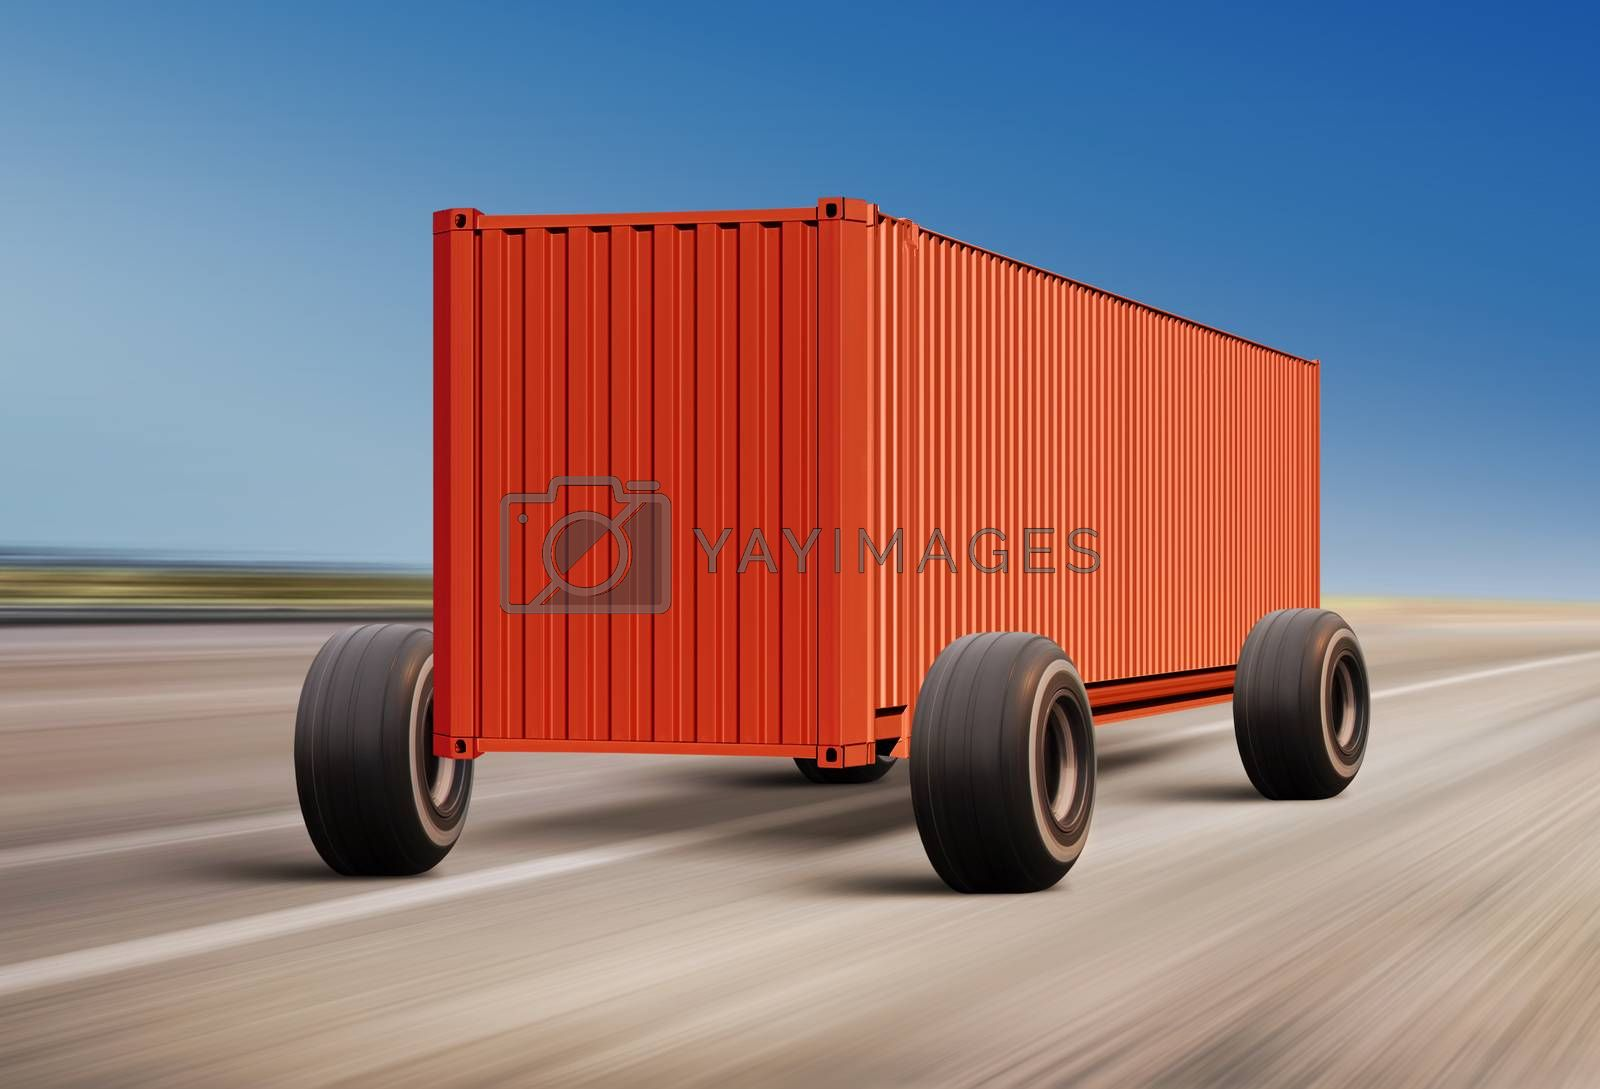 container moving on road, cargo transportation